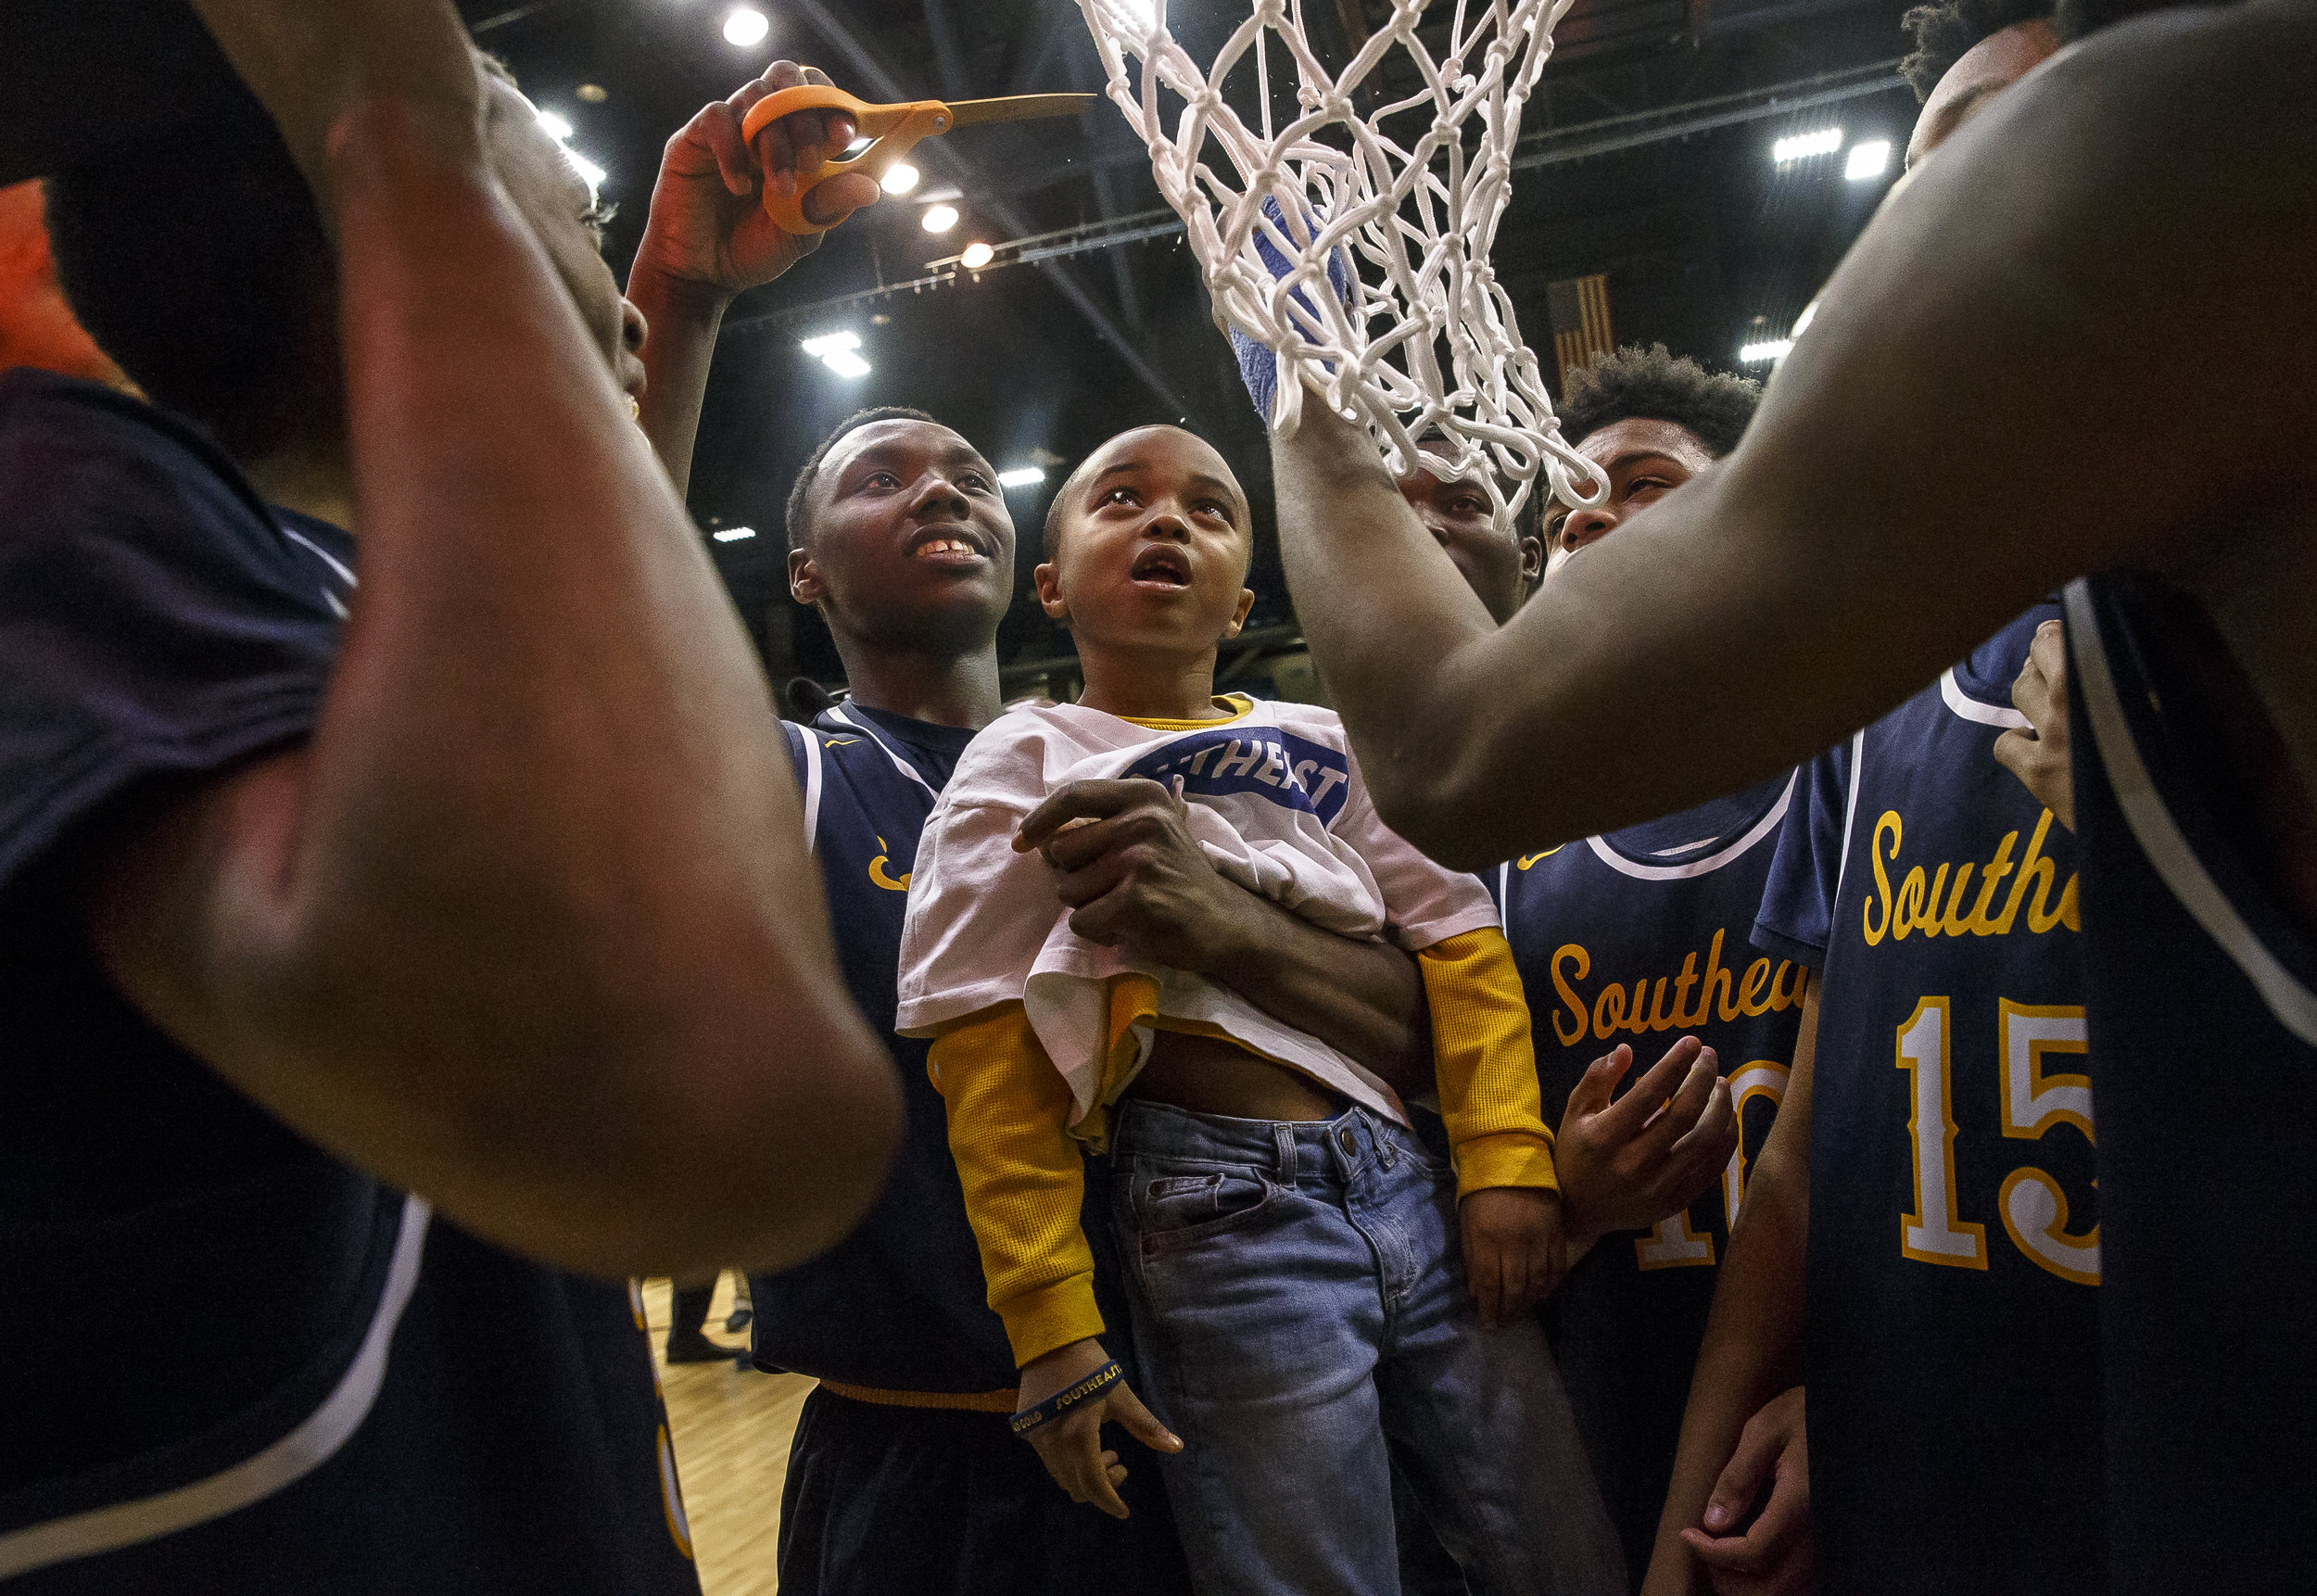 Lamar Coleman, 6, gets his piece of the net with a little help from Southeast's Devin Blue-Robinson (30) as they celebrate their 56-51 victory over Marion in the second half during the Class 3A Springfield Supersectional at the Bank of Springfield Center, Tuesday, March 13, 2018, in Springfield, Ill. [Justin L. Fowler/The State Journal-Register]